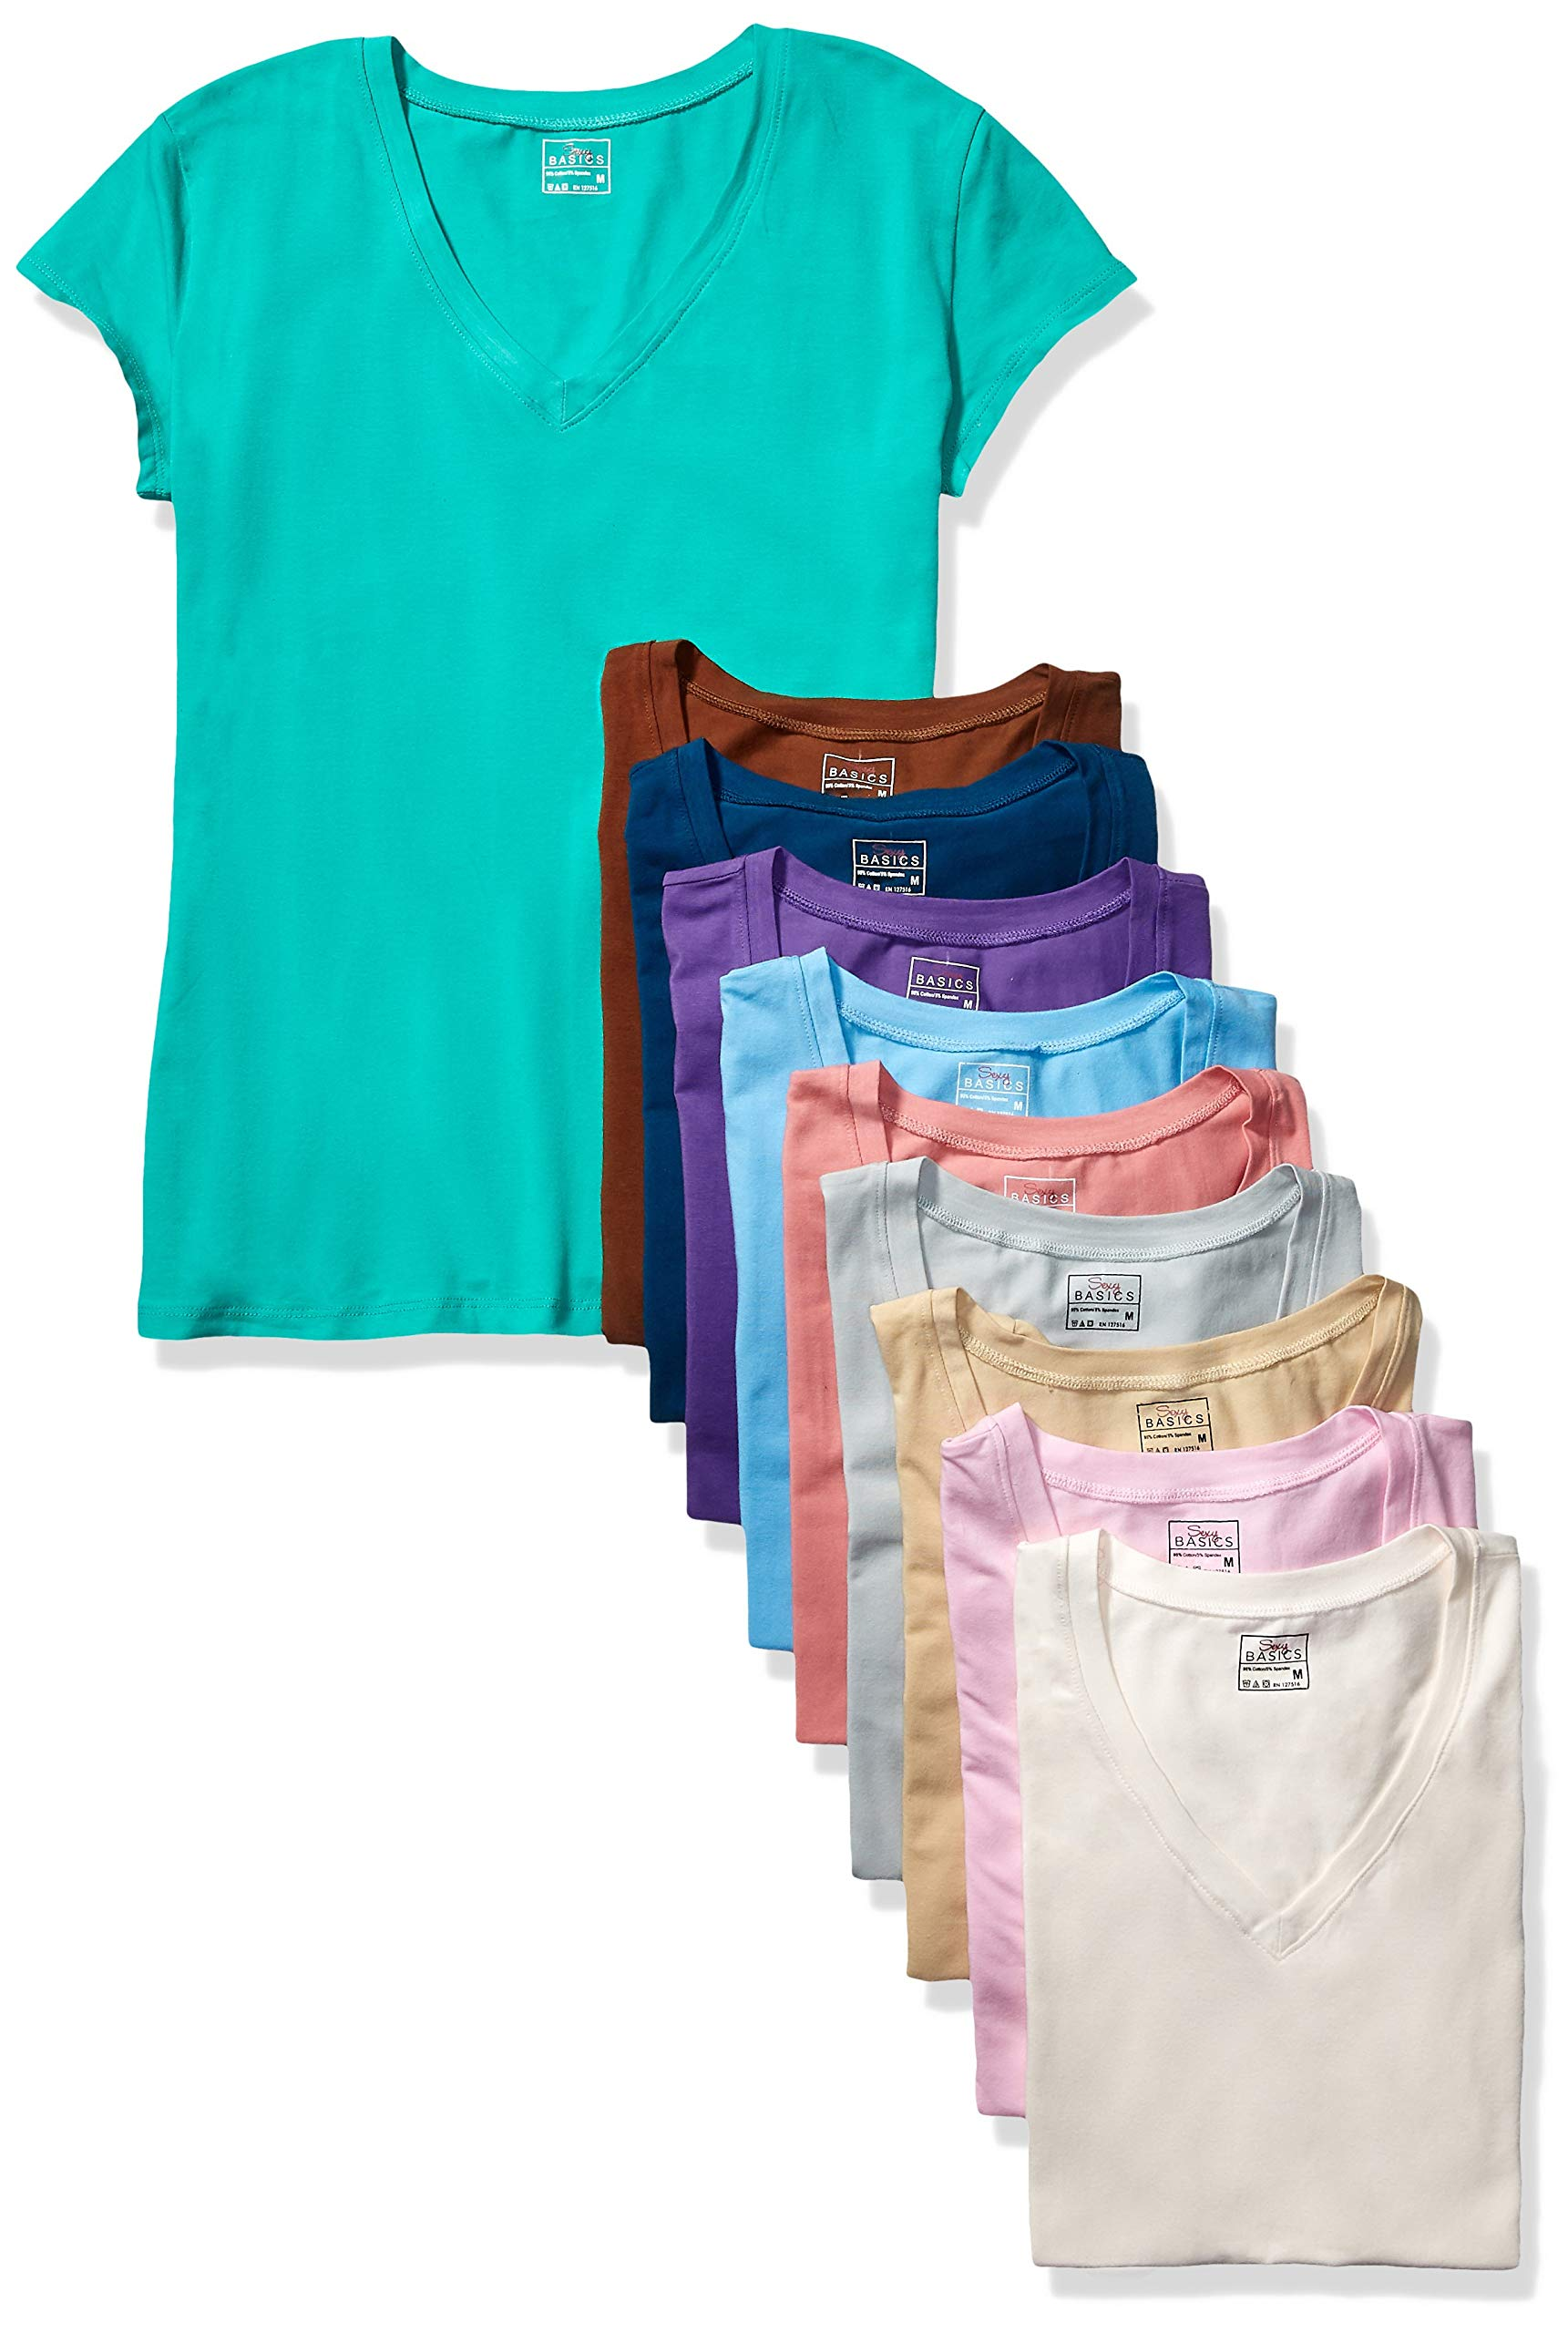 Sexy Basics Women's 5 & 10 Pack Casual & Active Cotton Stretch V Neck Short Sleeve Shirts (2XL, 10 Pack- Assorted Color Blast) by Sexy Basics